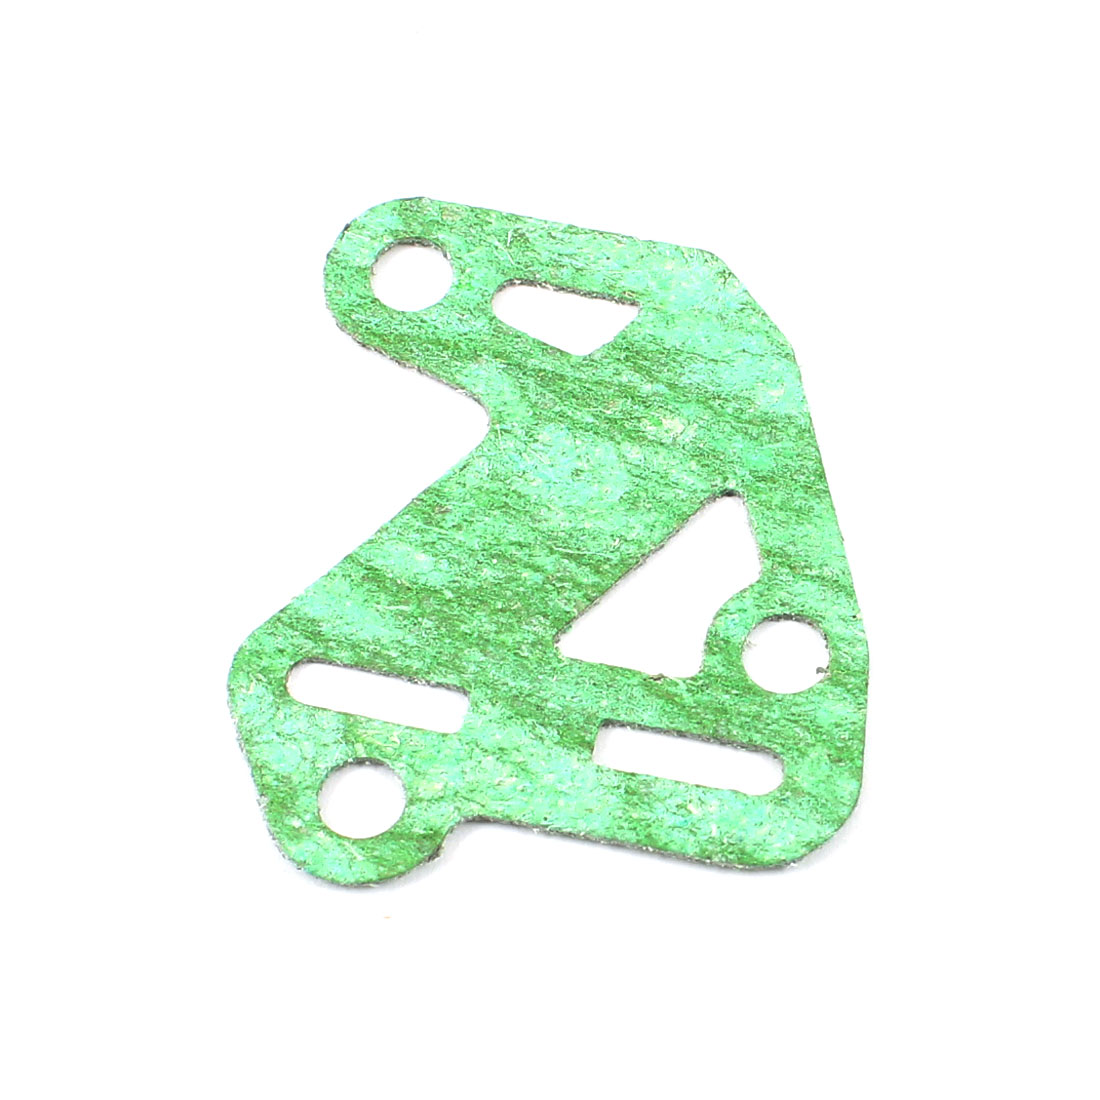 Chainsaw Intake Gasket Pump Pad Green for 45/52/58 Chain Saw